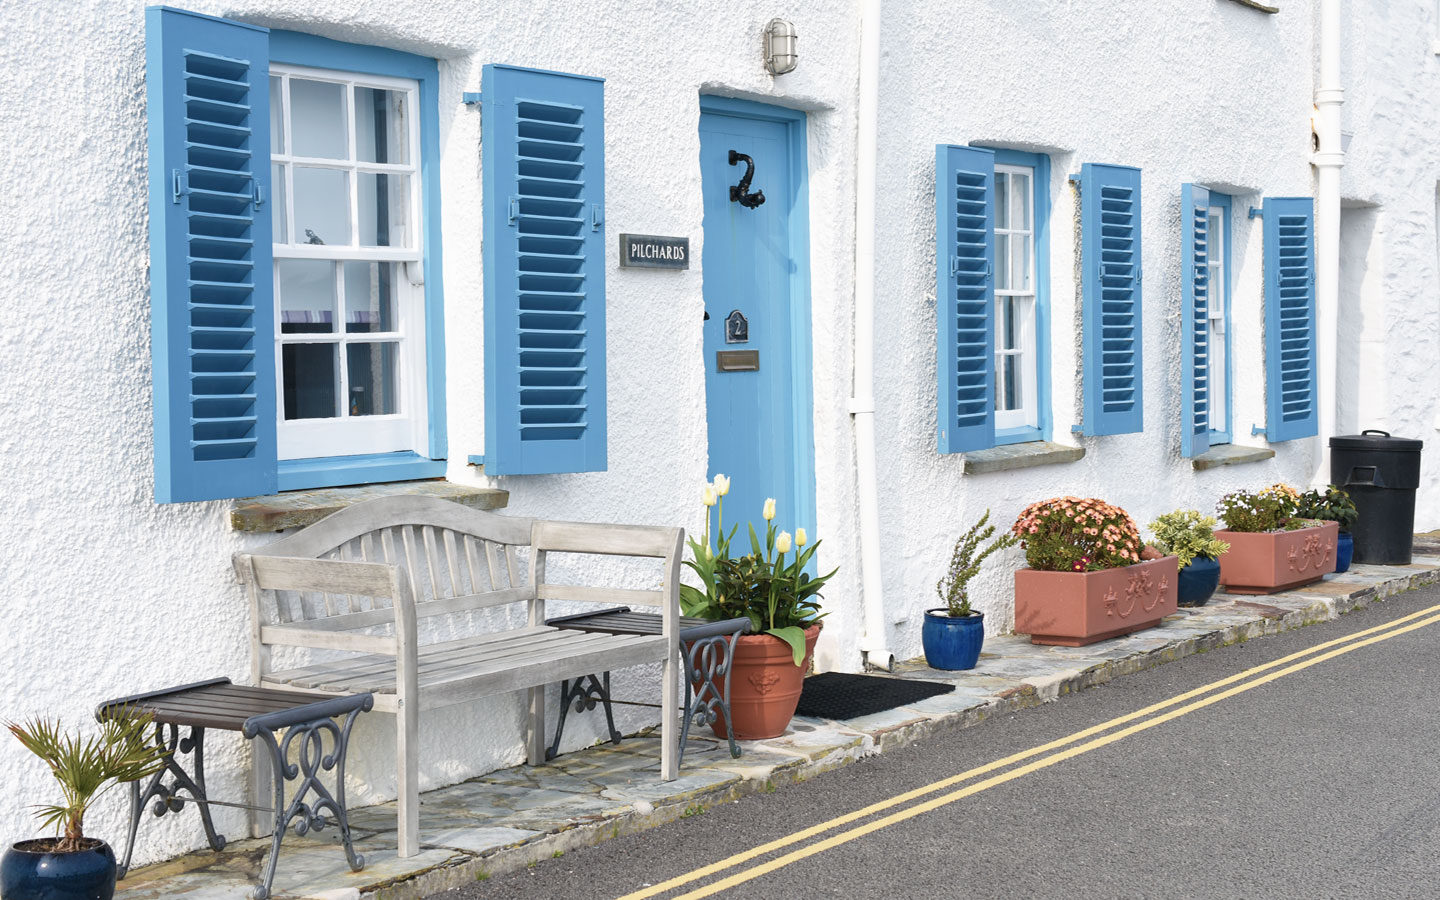 pilchards cottage with blue door and shutters in saint mawes in cornwall